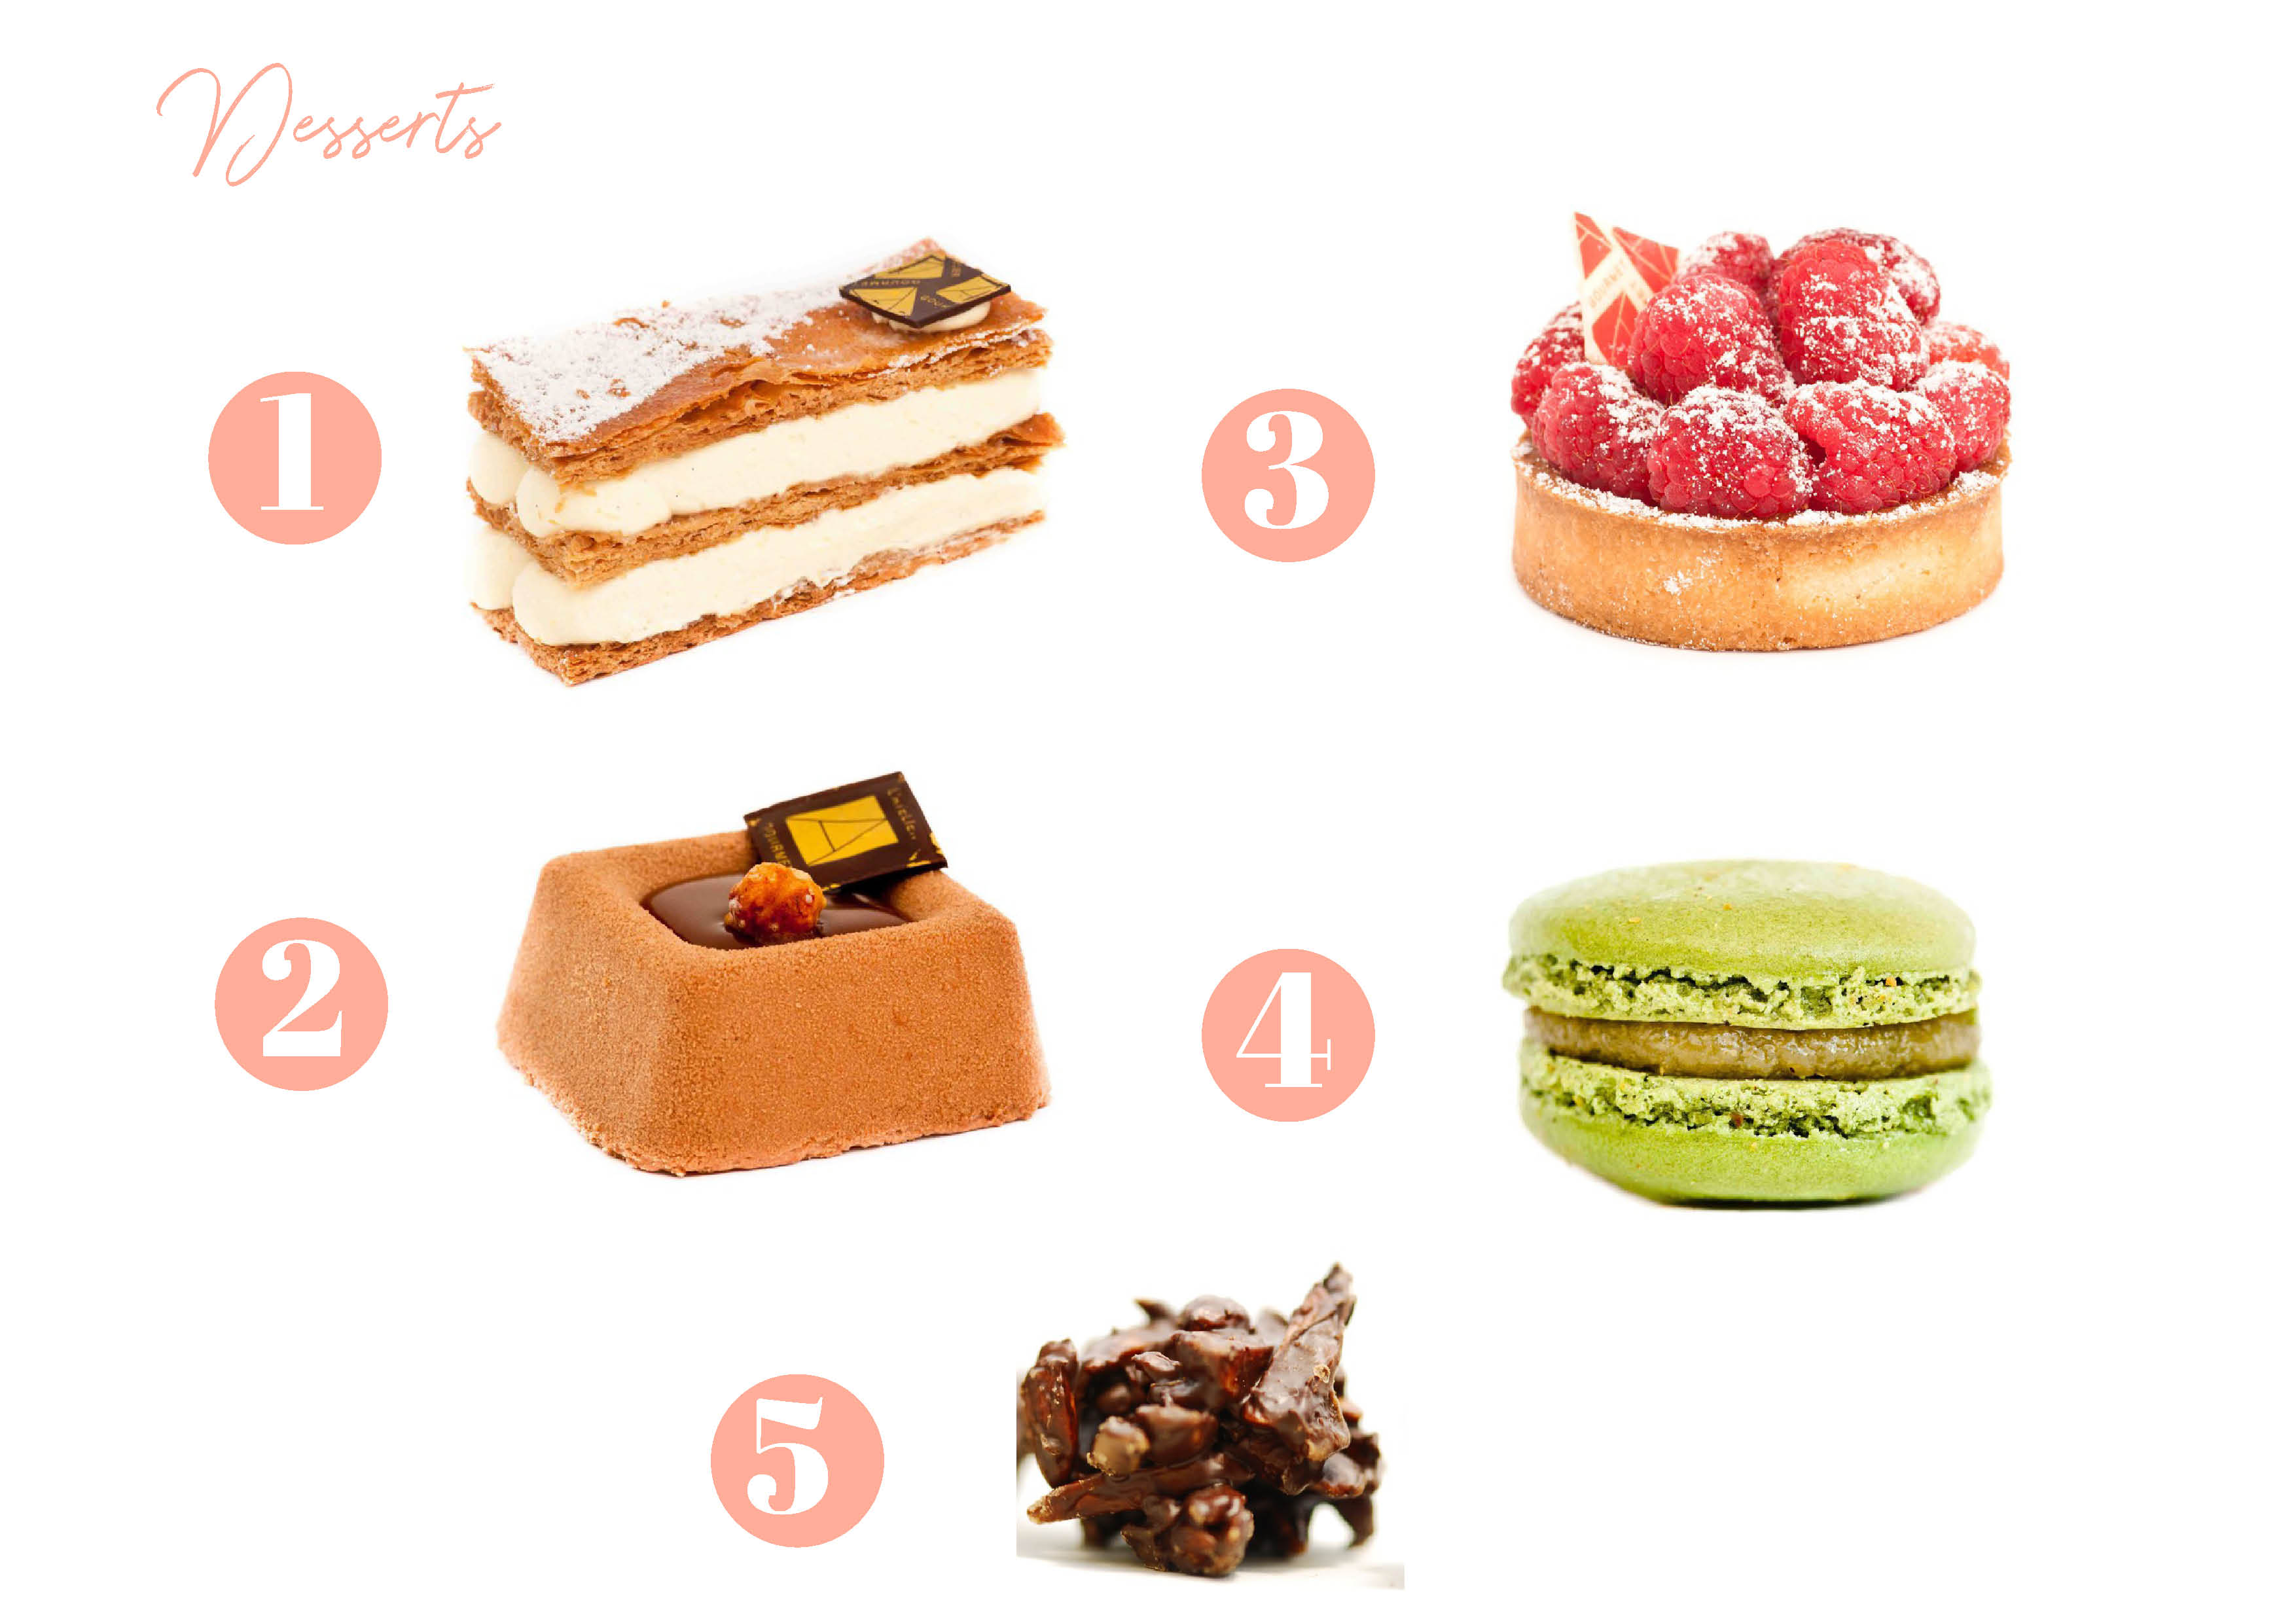 How to host a french apéro - The dessert - French Apero food French Bakery in Miami, French restaurant miami, French food miami, café miami, coffee shop miami, catering miami, dadeland, pinecrest, brickell, south beach, miami beach, millefeuille, raspberry tart, carré crunchy, hazelnut cake, macaron, macarons, macaroons, macaroon, french macarons, parisian macarons, chocolates, chocolate truffle, belgian chocolates